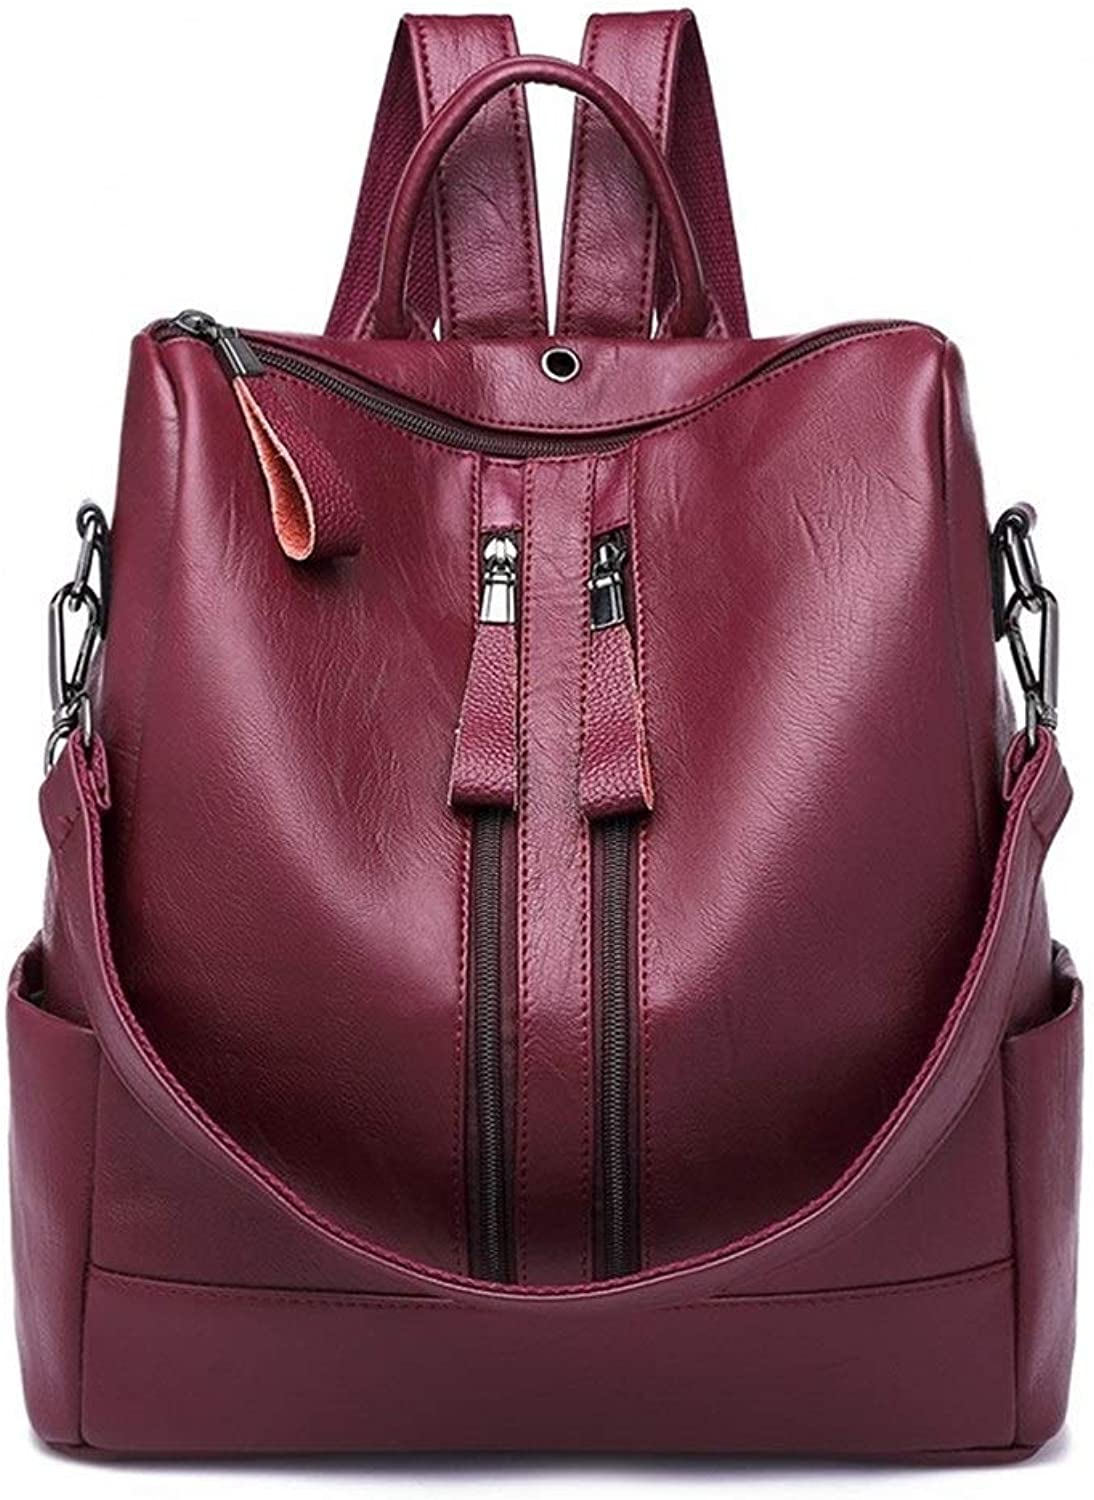 Fashion Large Capacity Ladies Backpacks Wild Casual Soft Leather Travel Women's Backpacks (color   Claret, Size   One Size)